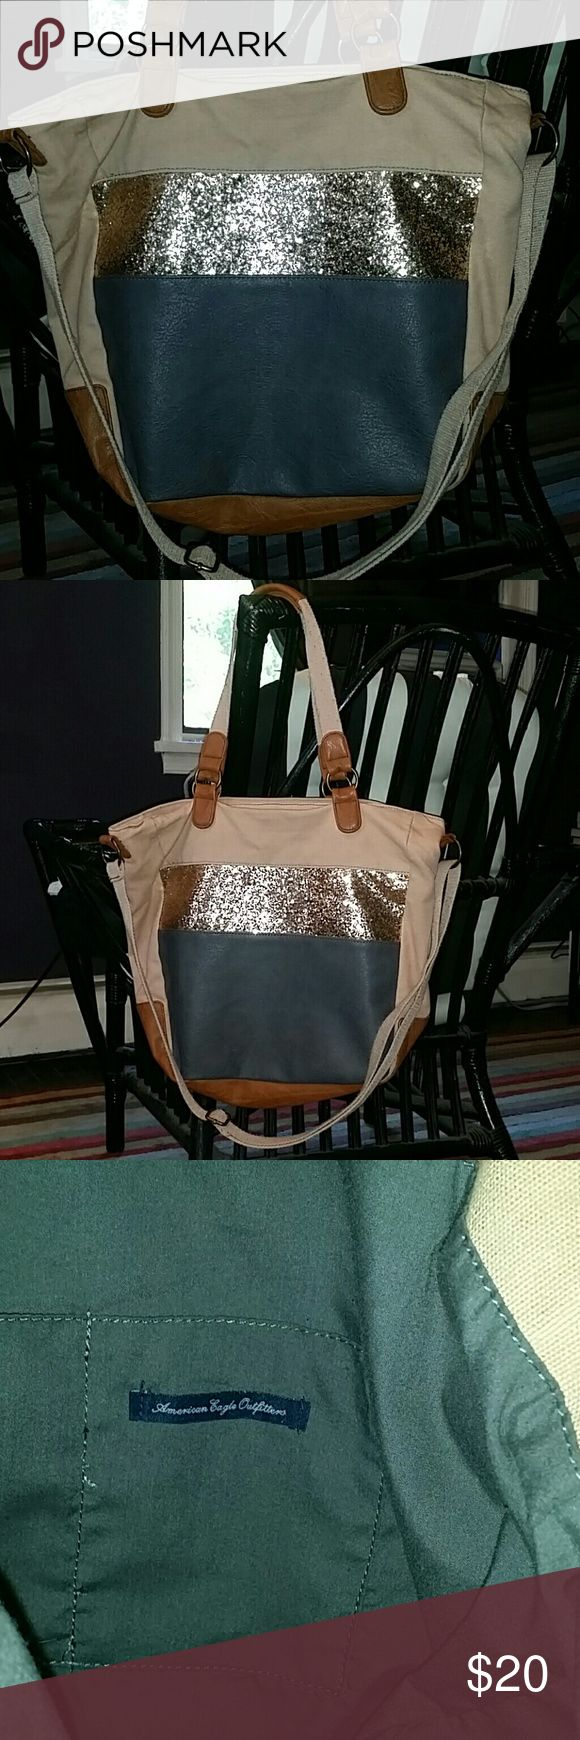 American Eagle AEO Sequin Tote Bag American Eagle Tote, Leather, Canvas, & Sequin, Tan canvas, grey & brown leather, with Gold sequin, has adjustable cross body strap, used very lightly, straps have some piling but could easily be removed, great bag for everyday or traveling! American Eagle Outfitters Bags Totes